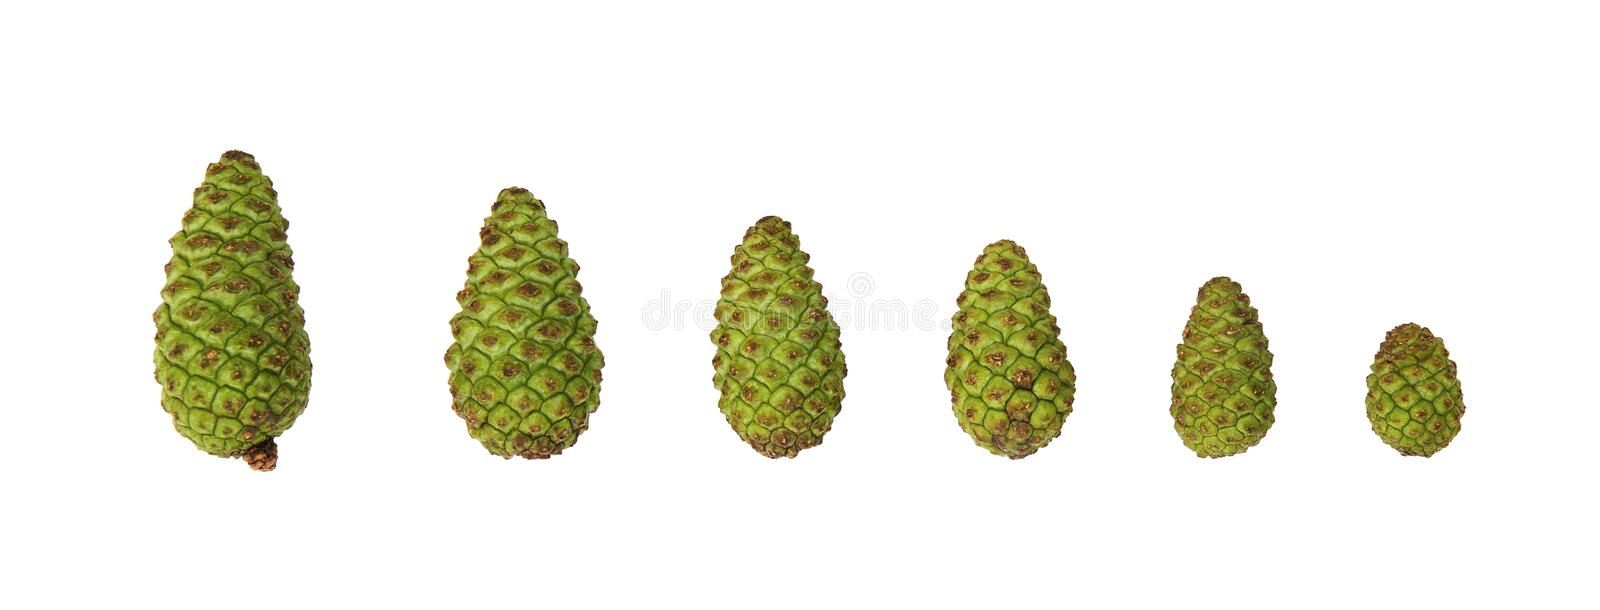 Many sizes of Green pine cones, isolated on white background royalty free stock image